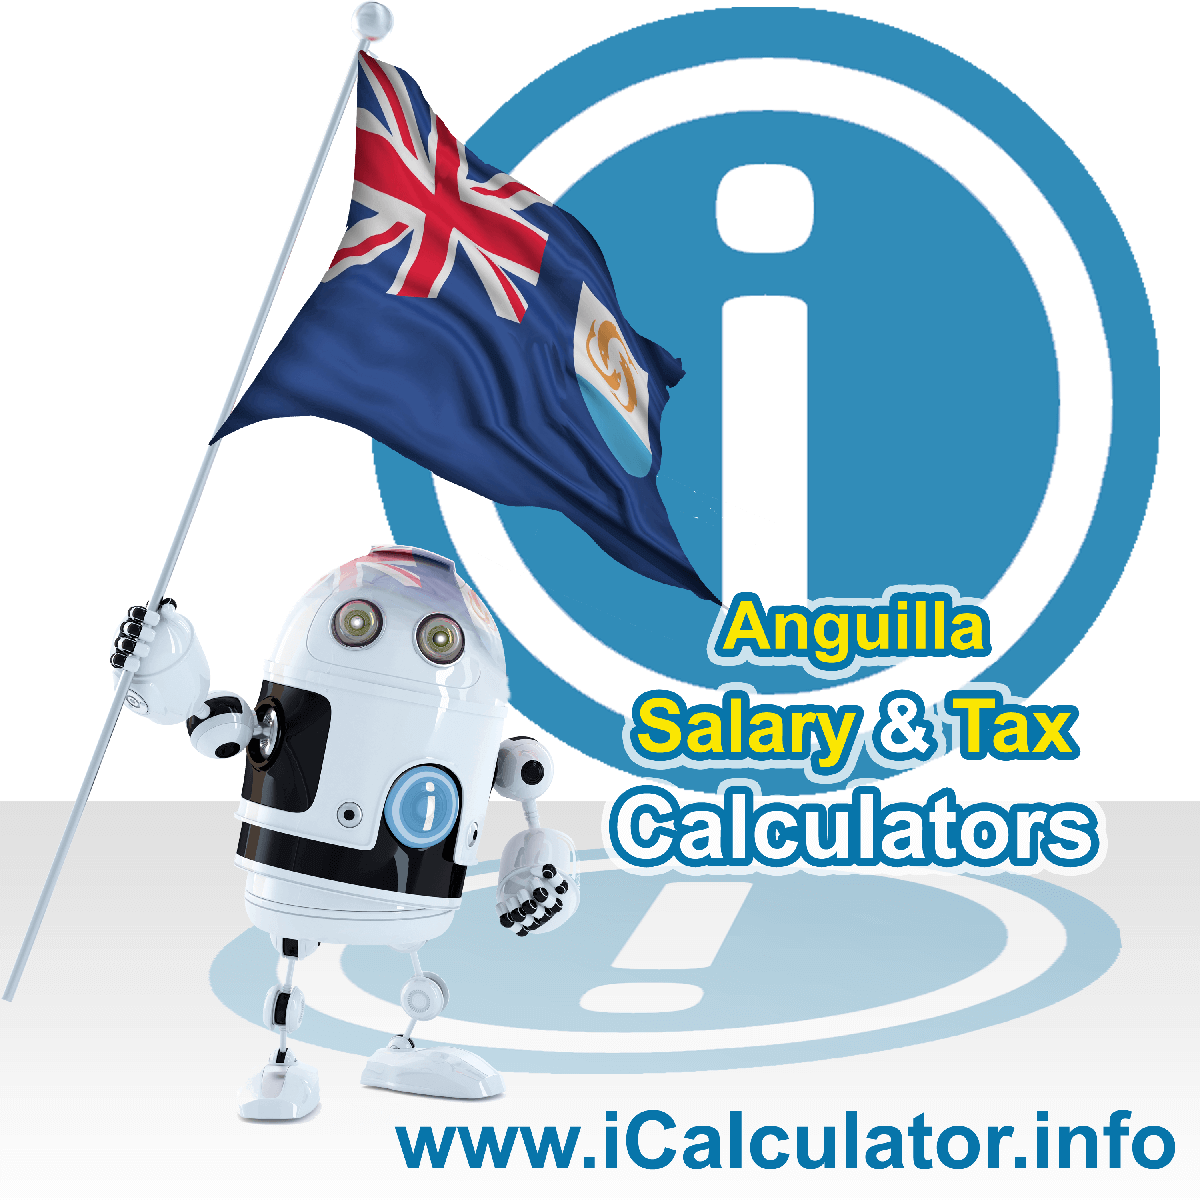 Anguilla Wage Calculator. This image shows the Anguilla flag and information relating to the tax formula for the Anguilla Tax Calculator